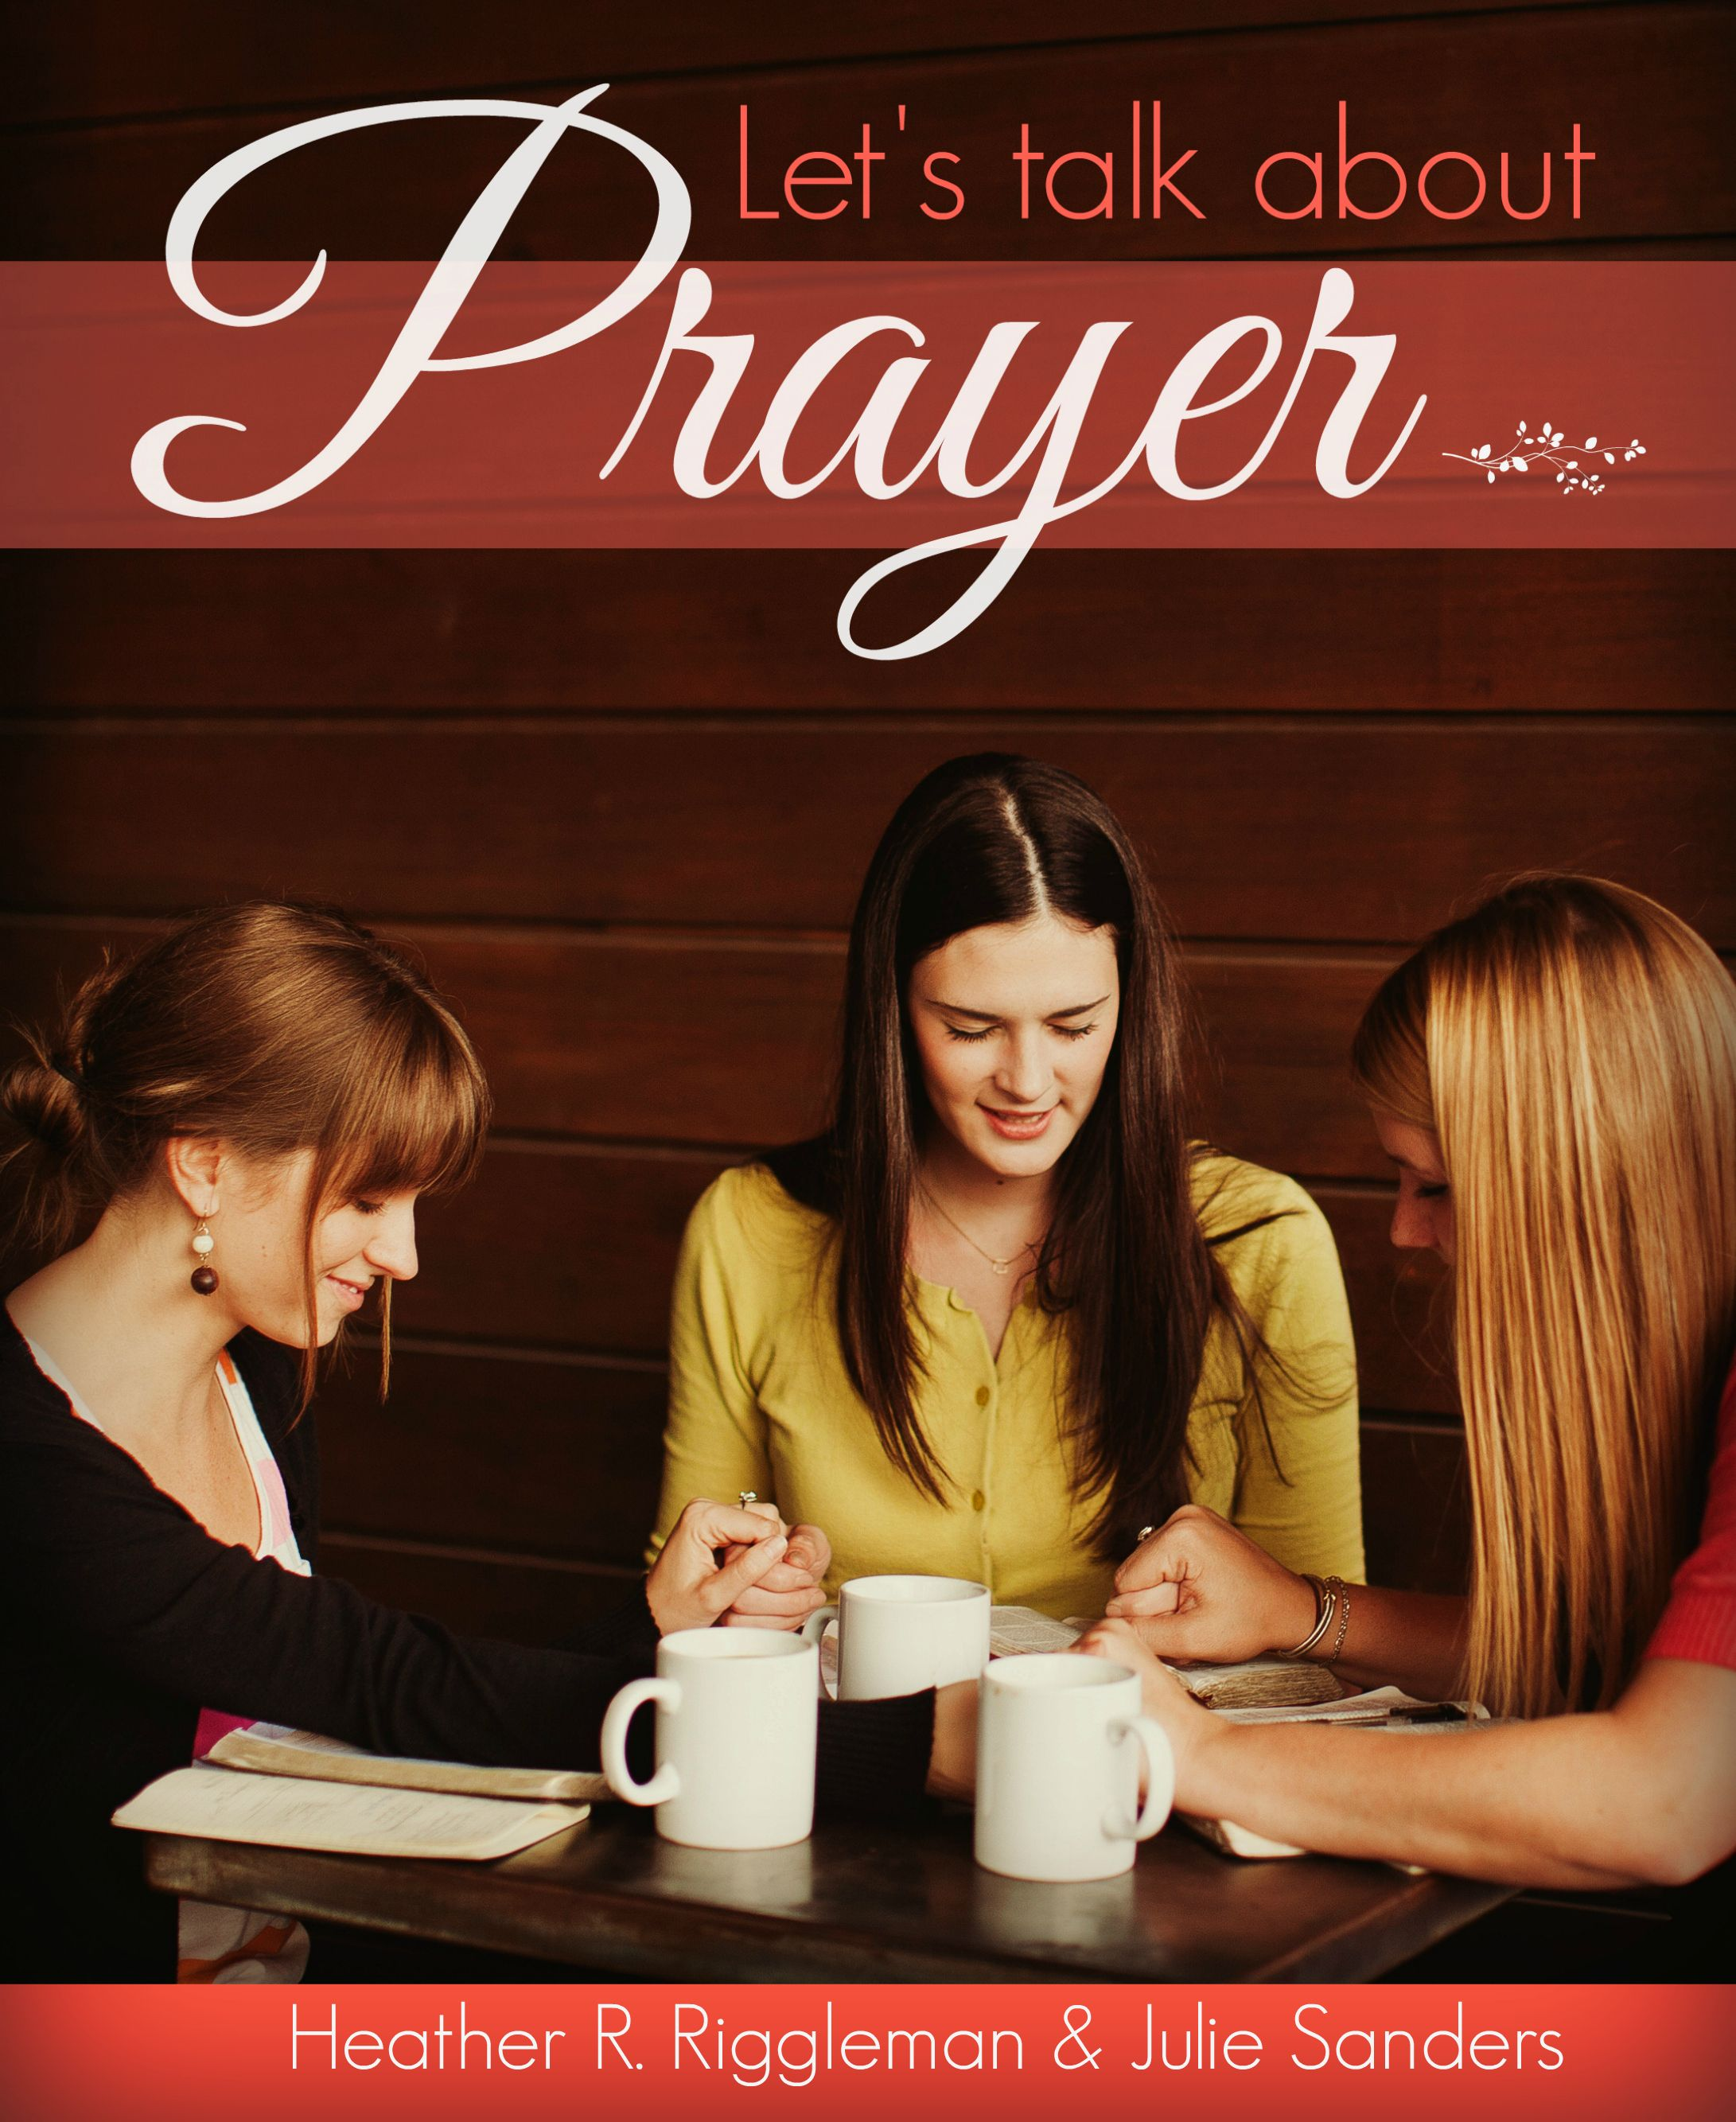 Listen in on a conversation between a 30 something & a 40 something mom as they talk about how to pray. Be empowered to pray for your family, have a simple plan for when you're busy or overwhelmed, and know how to pray scripture. Free printables included. Lets Talk about Prayer! www.juliesanders.org @heatherrigg